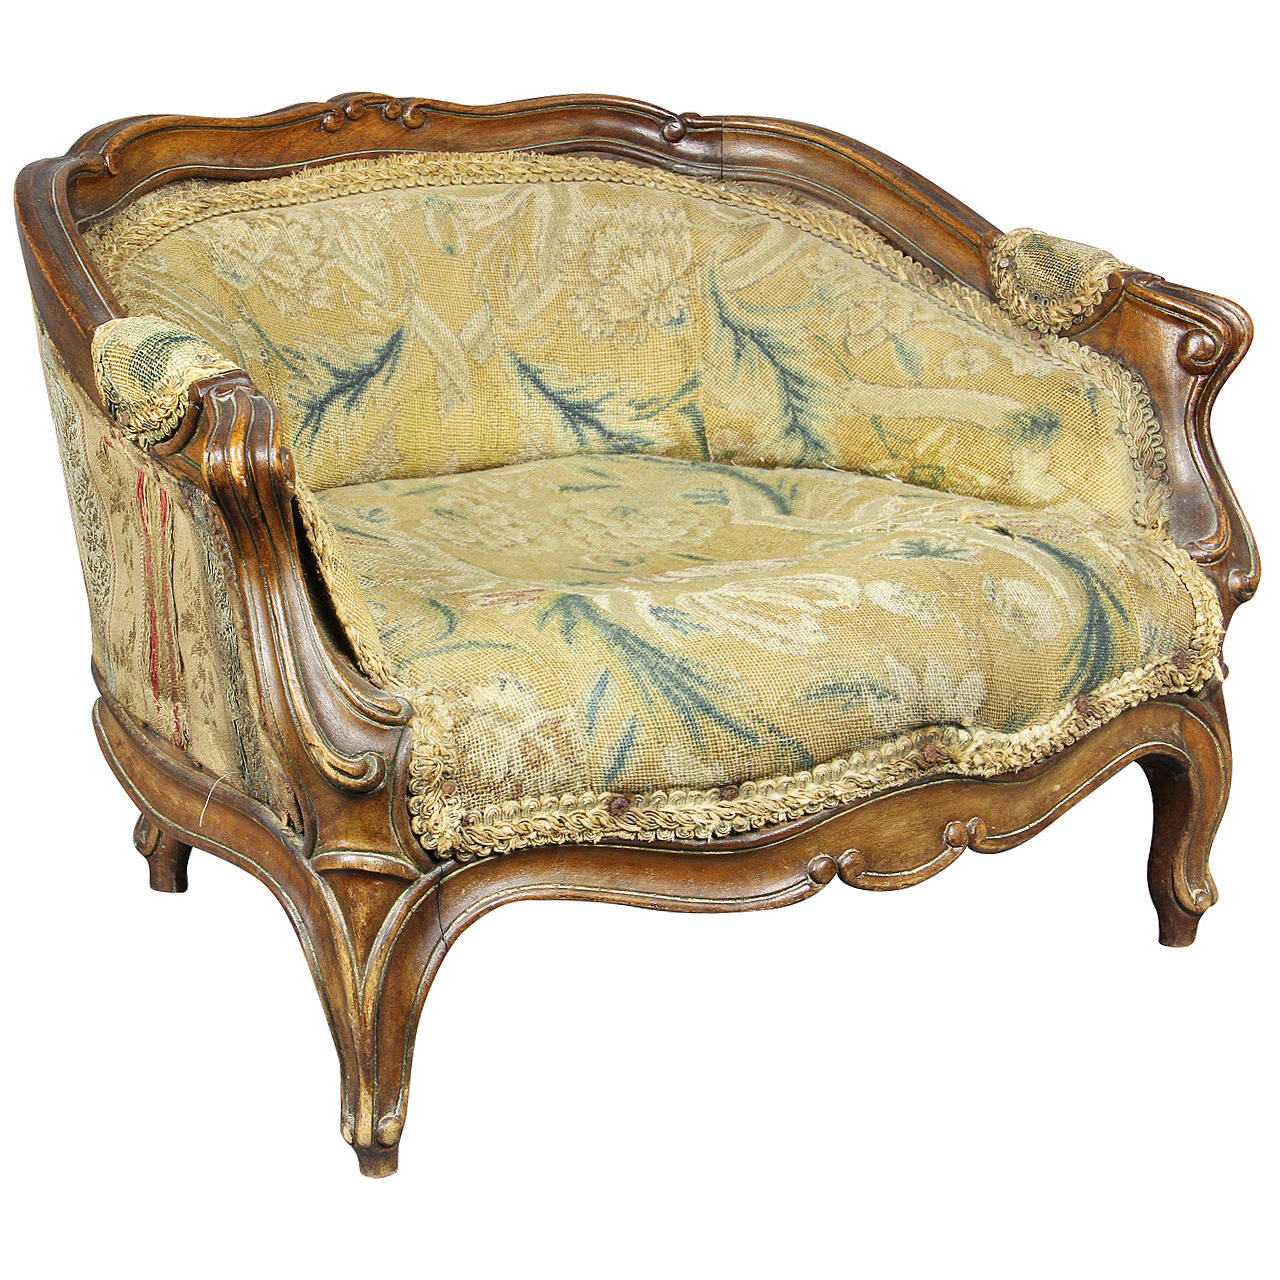 bergere chairs for sale hickory chair accessories cute louis xv style walnut childs at 1stdibs